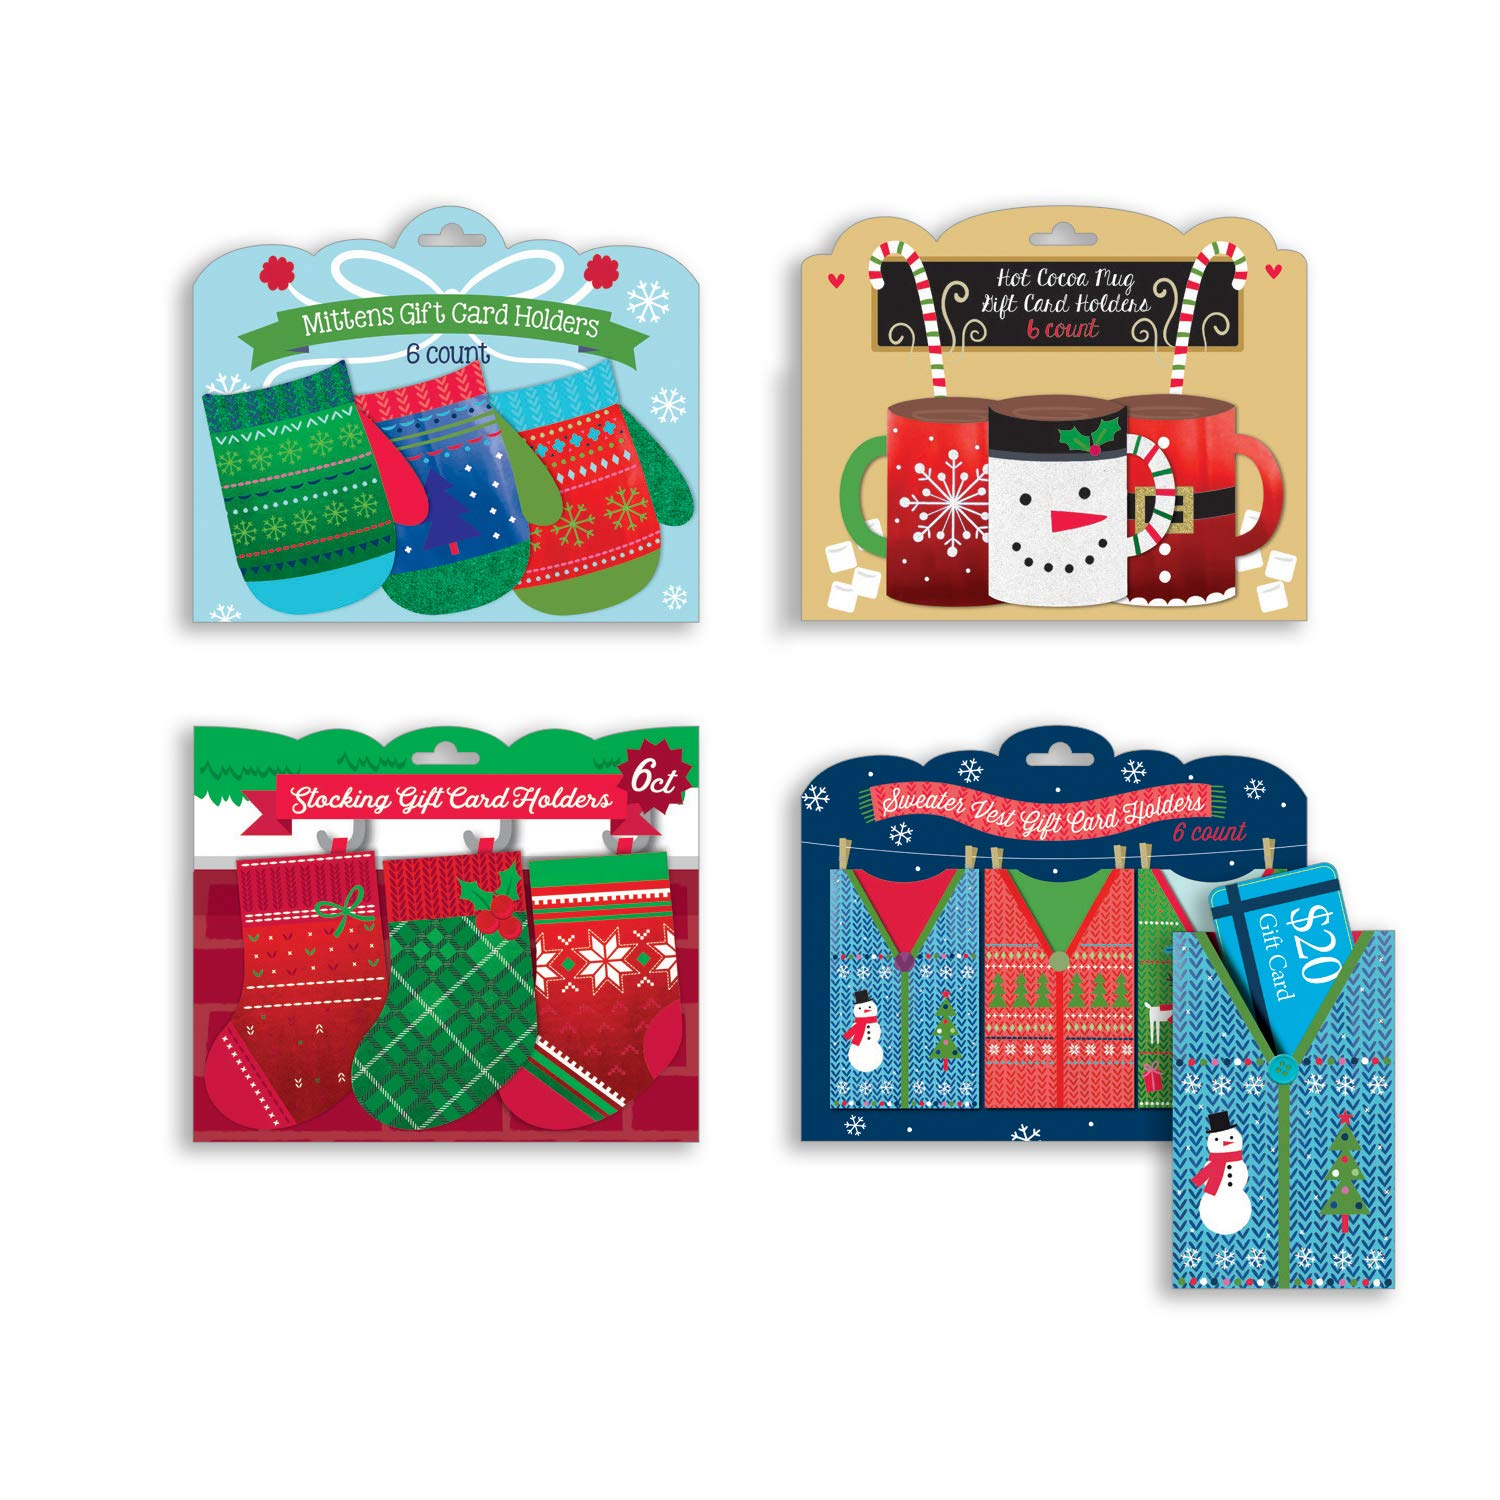 Festive Gift Card Holders 24 Count Great for